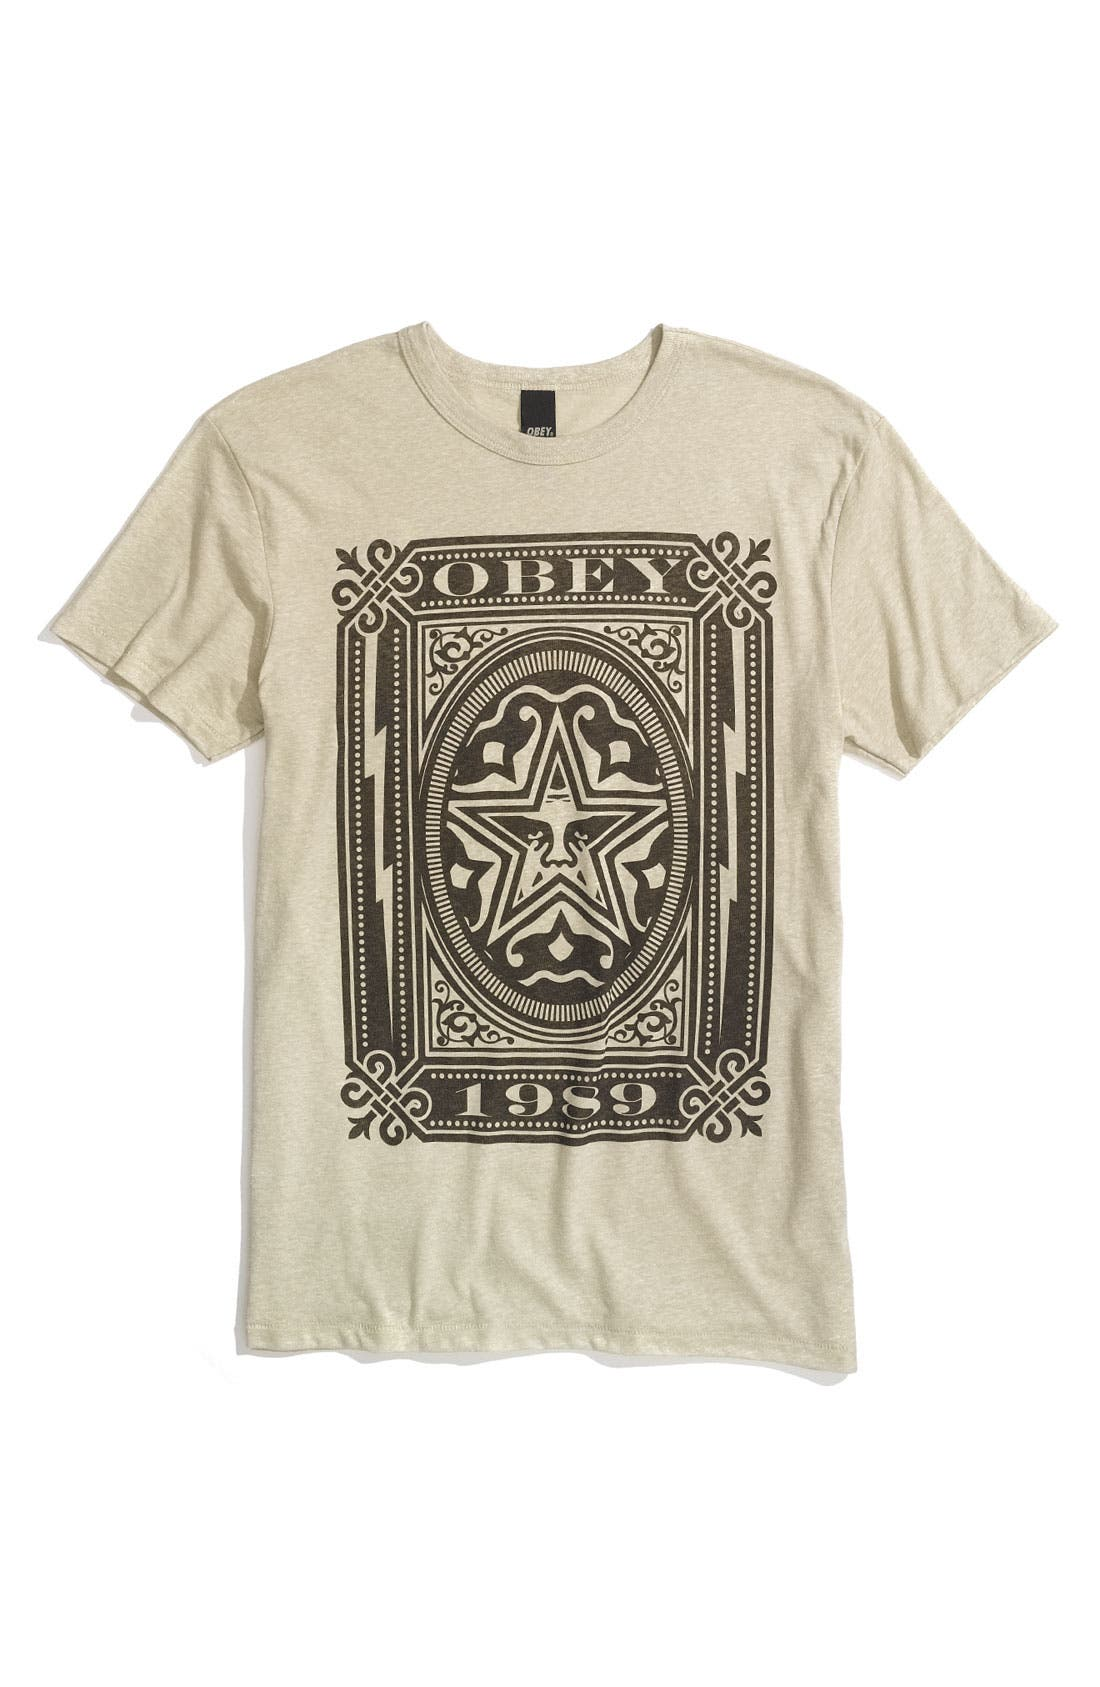 Main Image - Obey 'Imperial' Screenprint T-Shirt